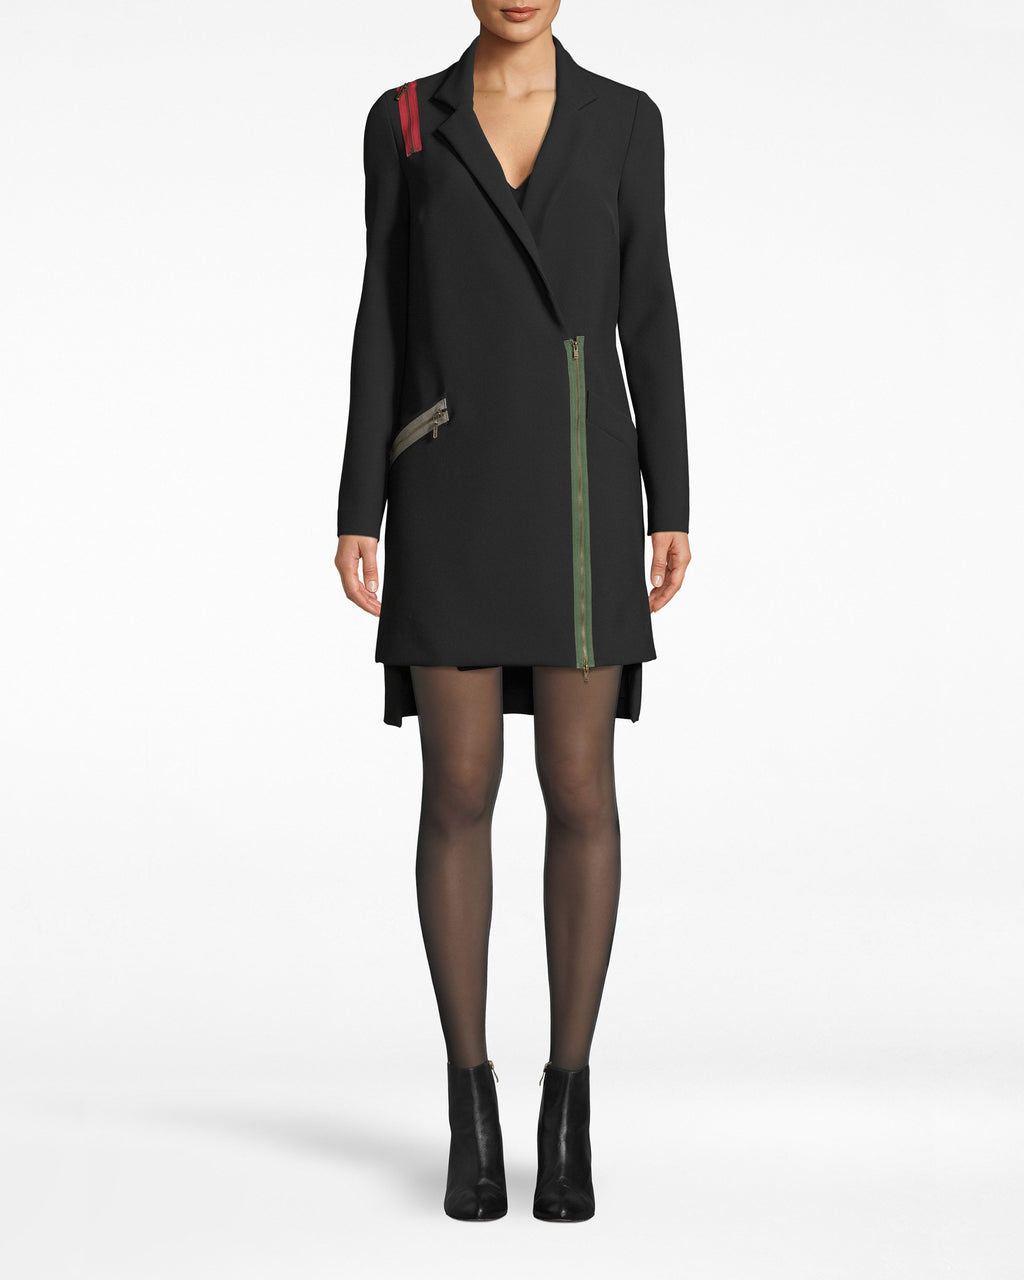 CD10091 - EXPOSED ZIPPERS BLAZER DRESS - dresses - short - Evening mode: on. Our Exposed Zippers add to the unexpectedness on this blazer dress. Long sleeves elongate the silhouette and an asymmetrical hem brings attention to the legs. The deep v neck wraps across the body.